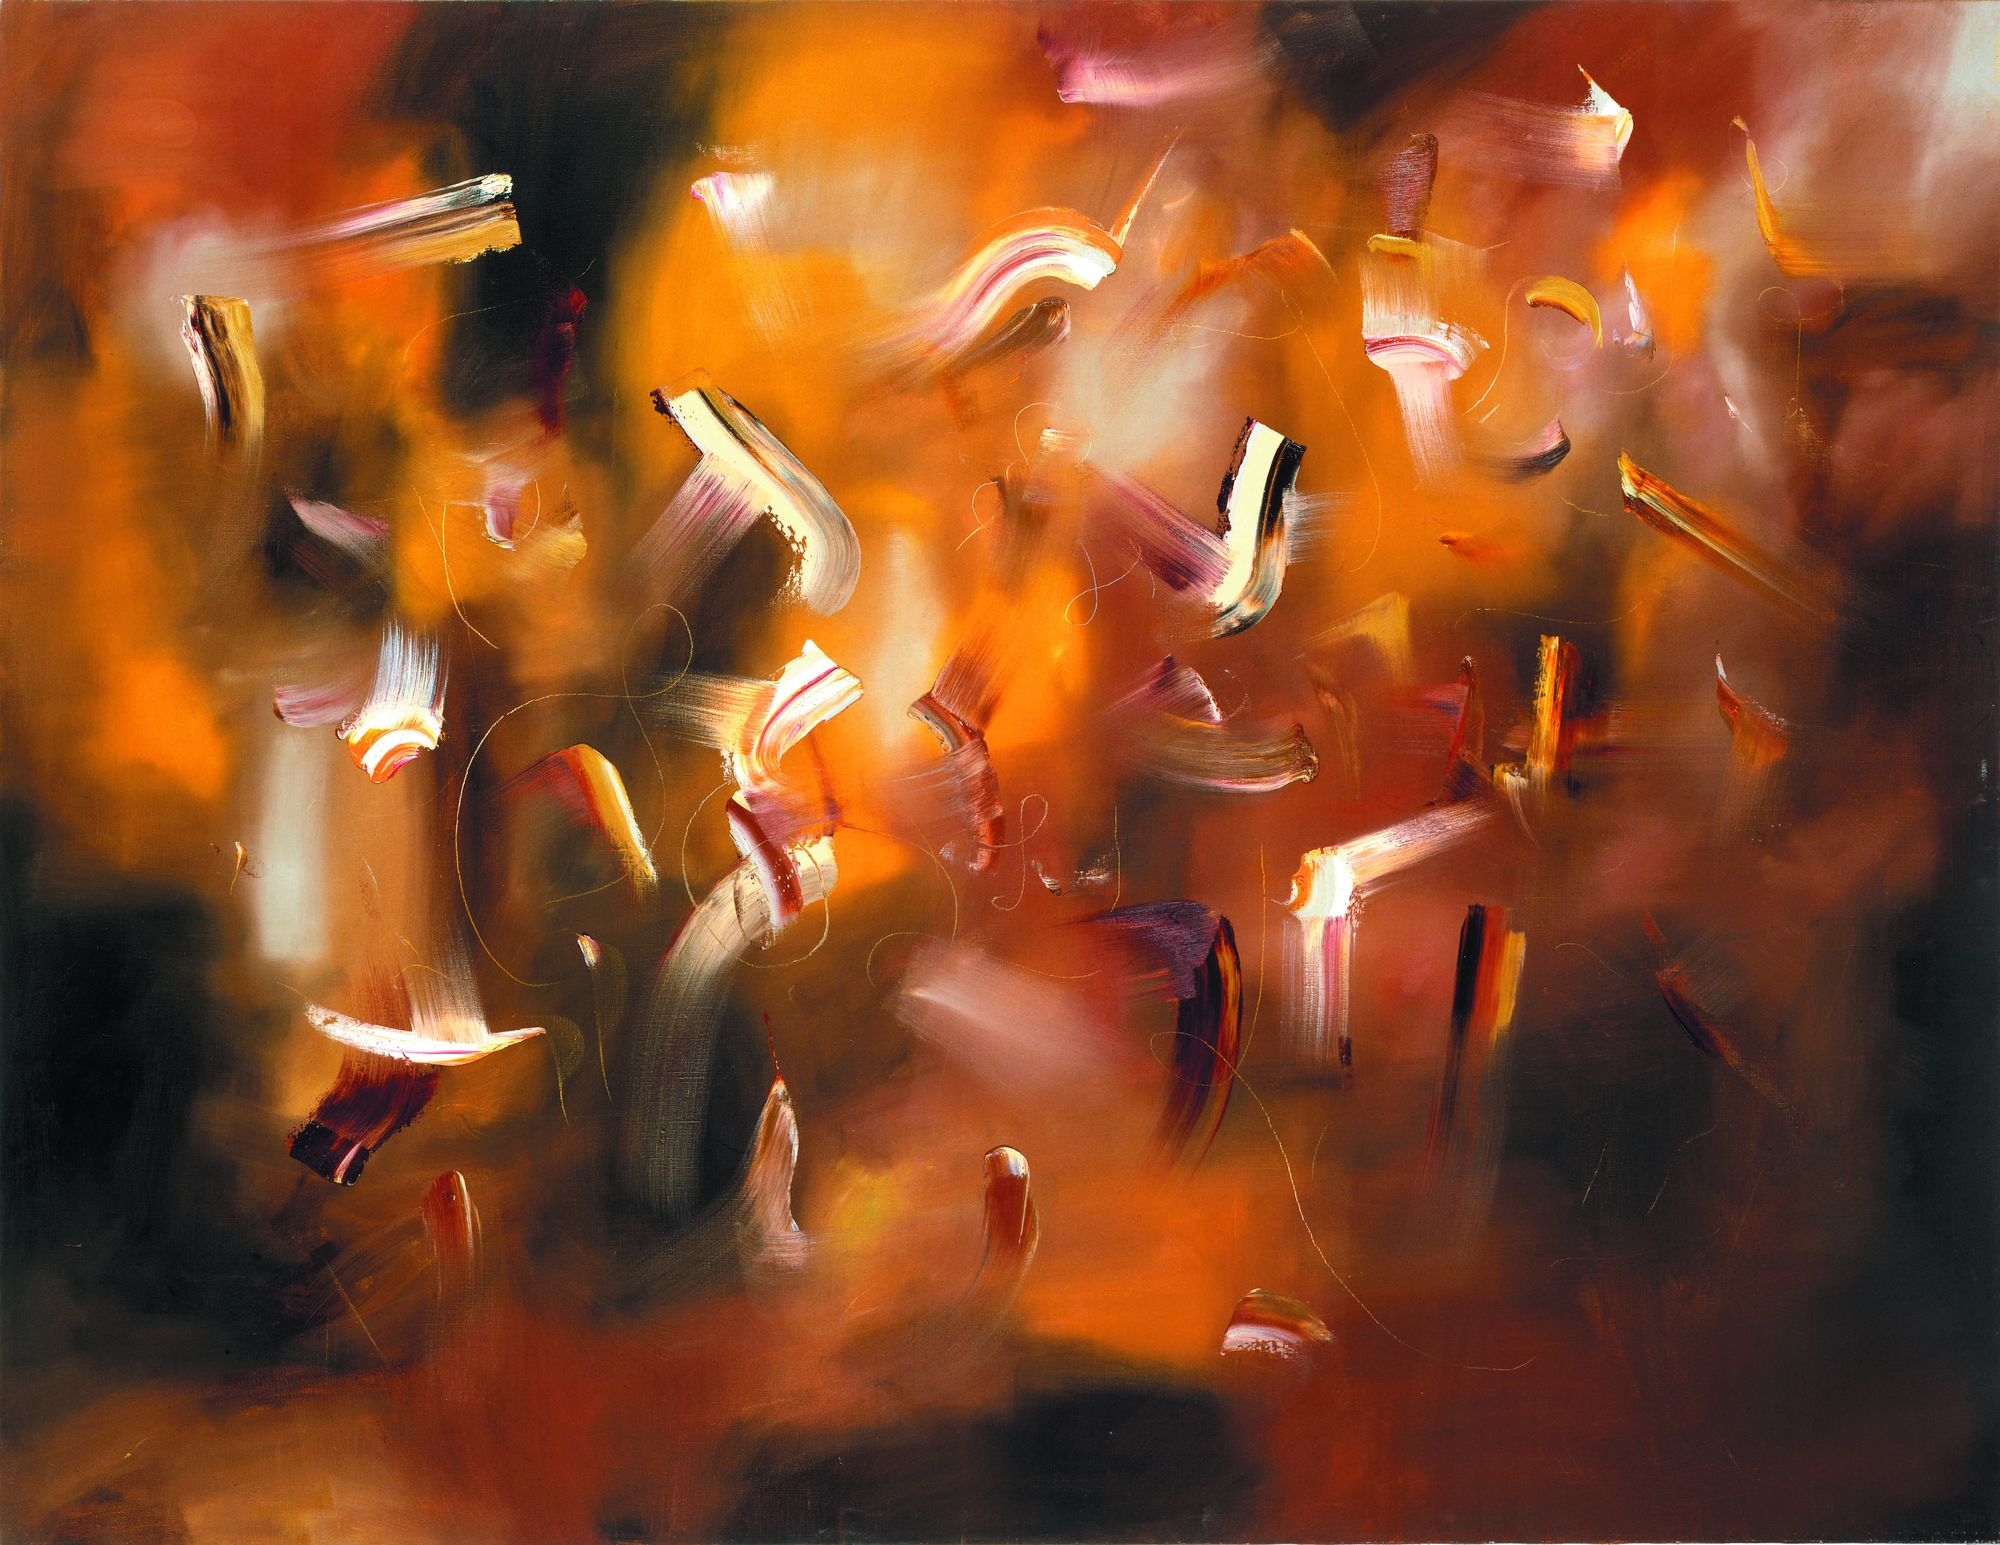 DEDICATION TO REMBRANDT, 2007, oil in canvas, 150 x 200 cm. Private collection